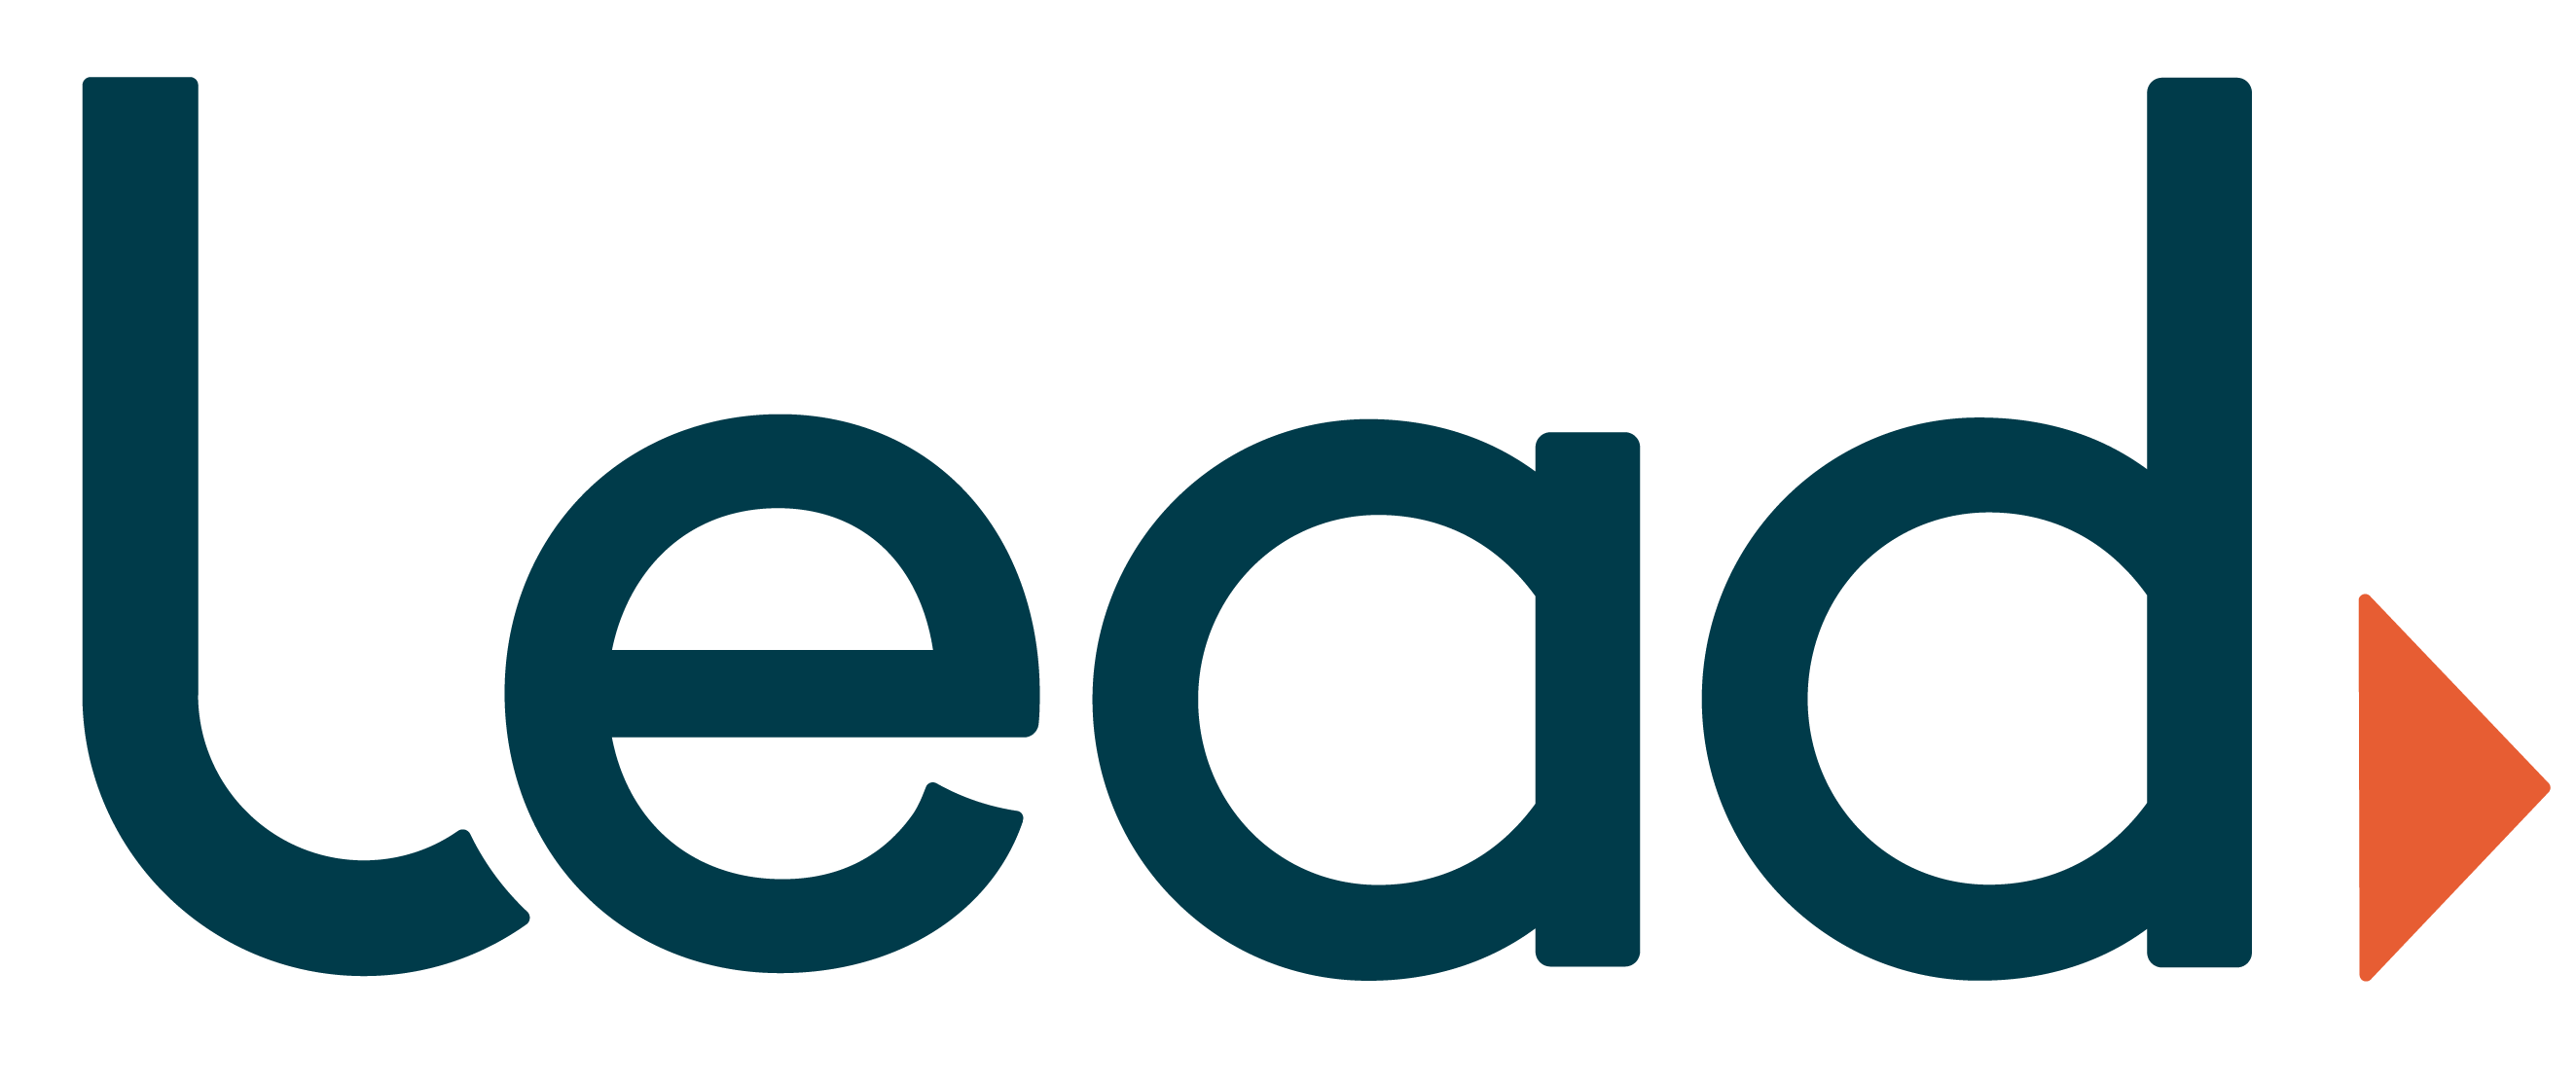 Lead_Master_Logo.png